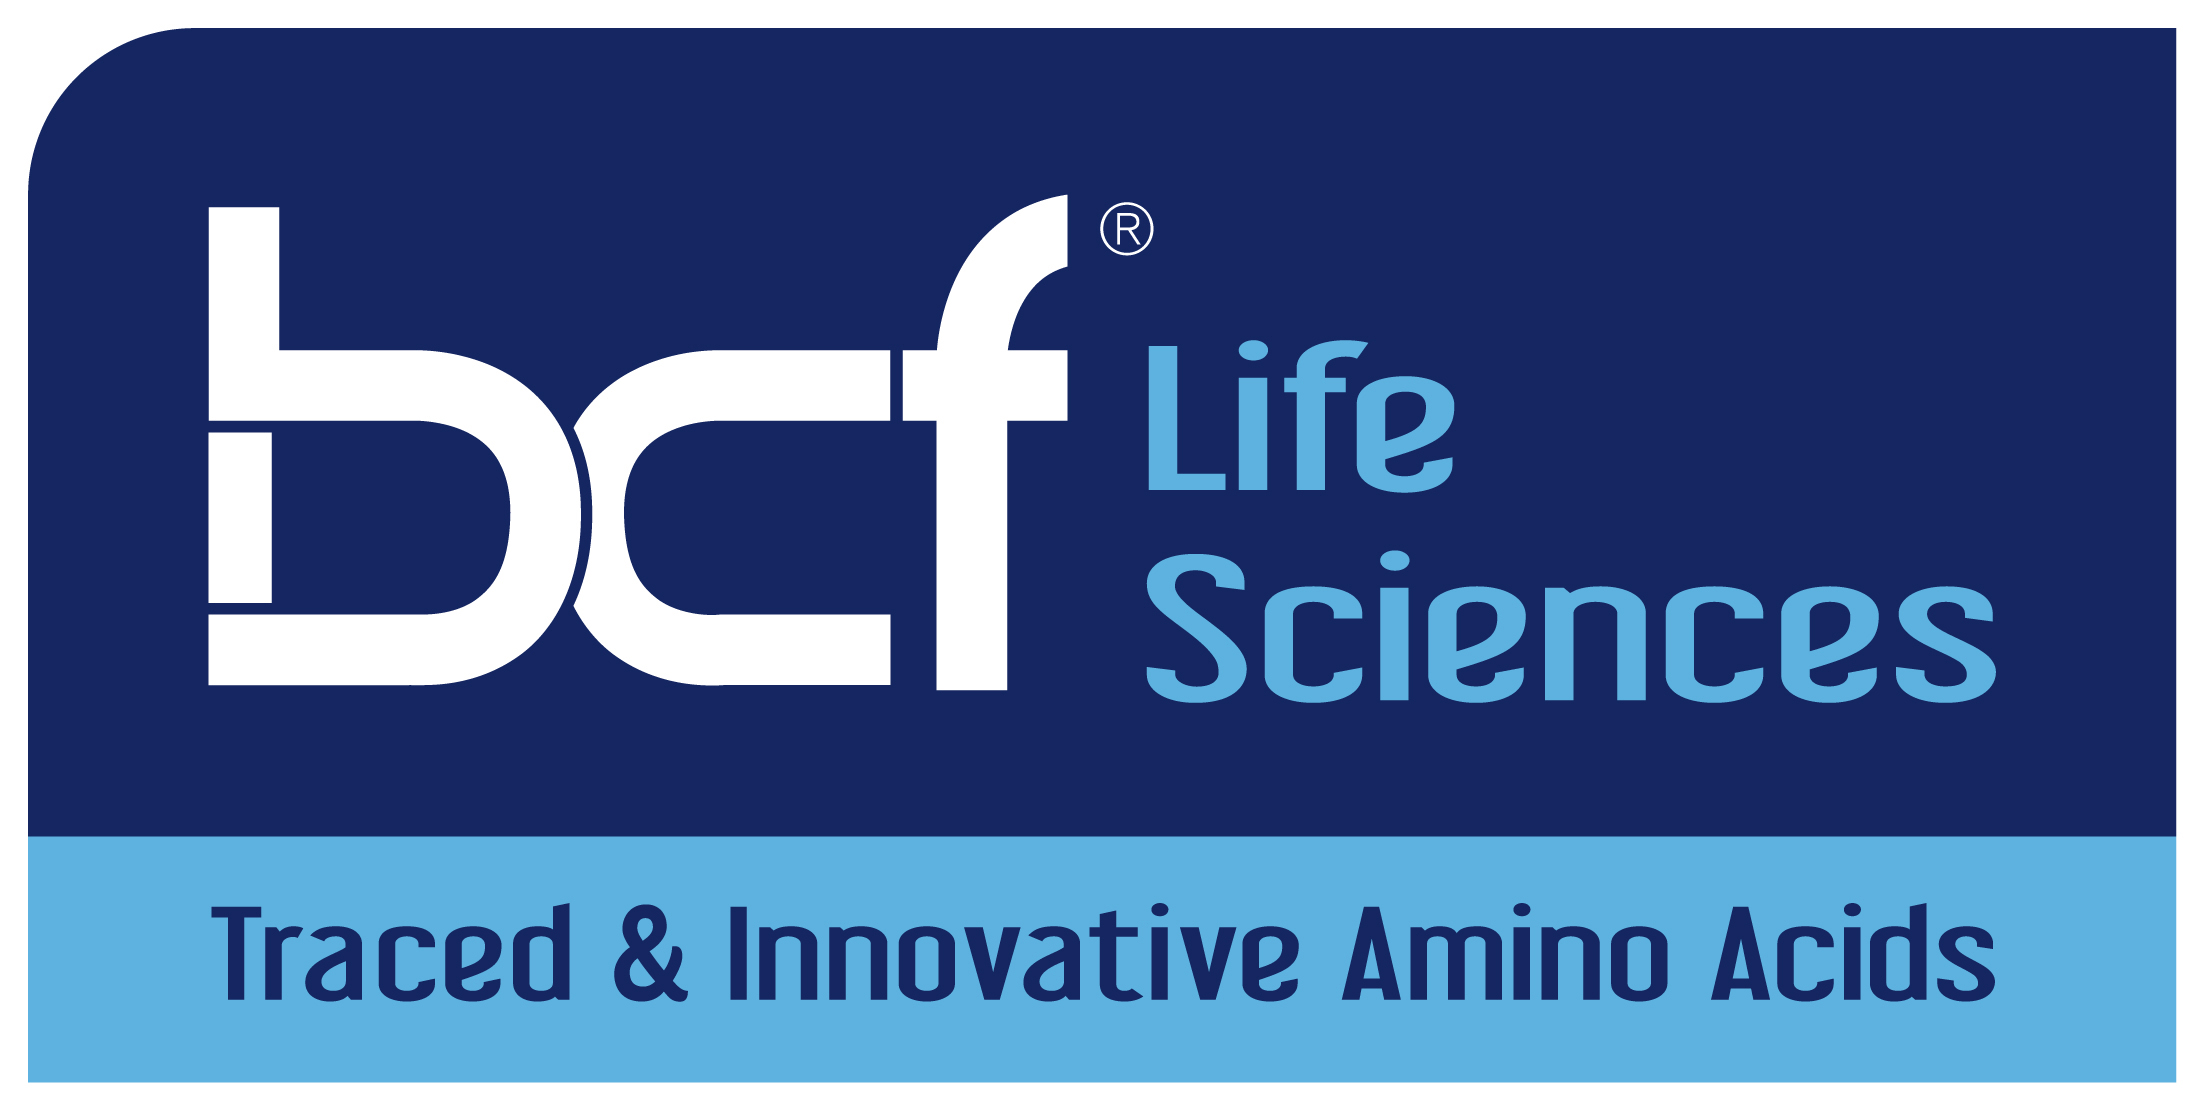 BCF LIFE SCIENCES